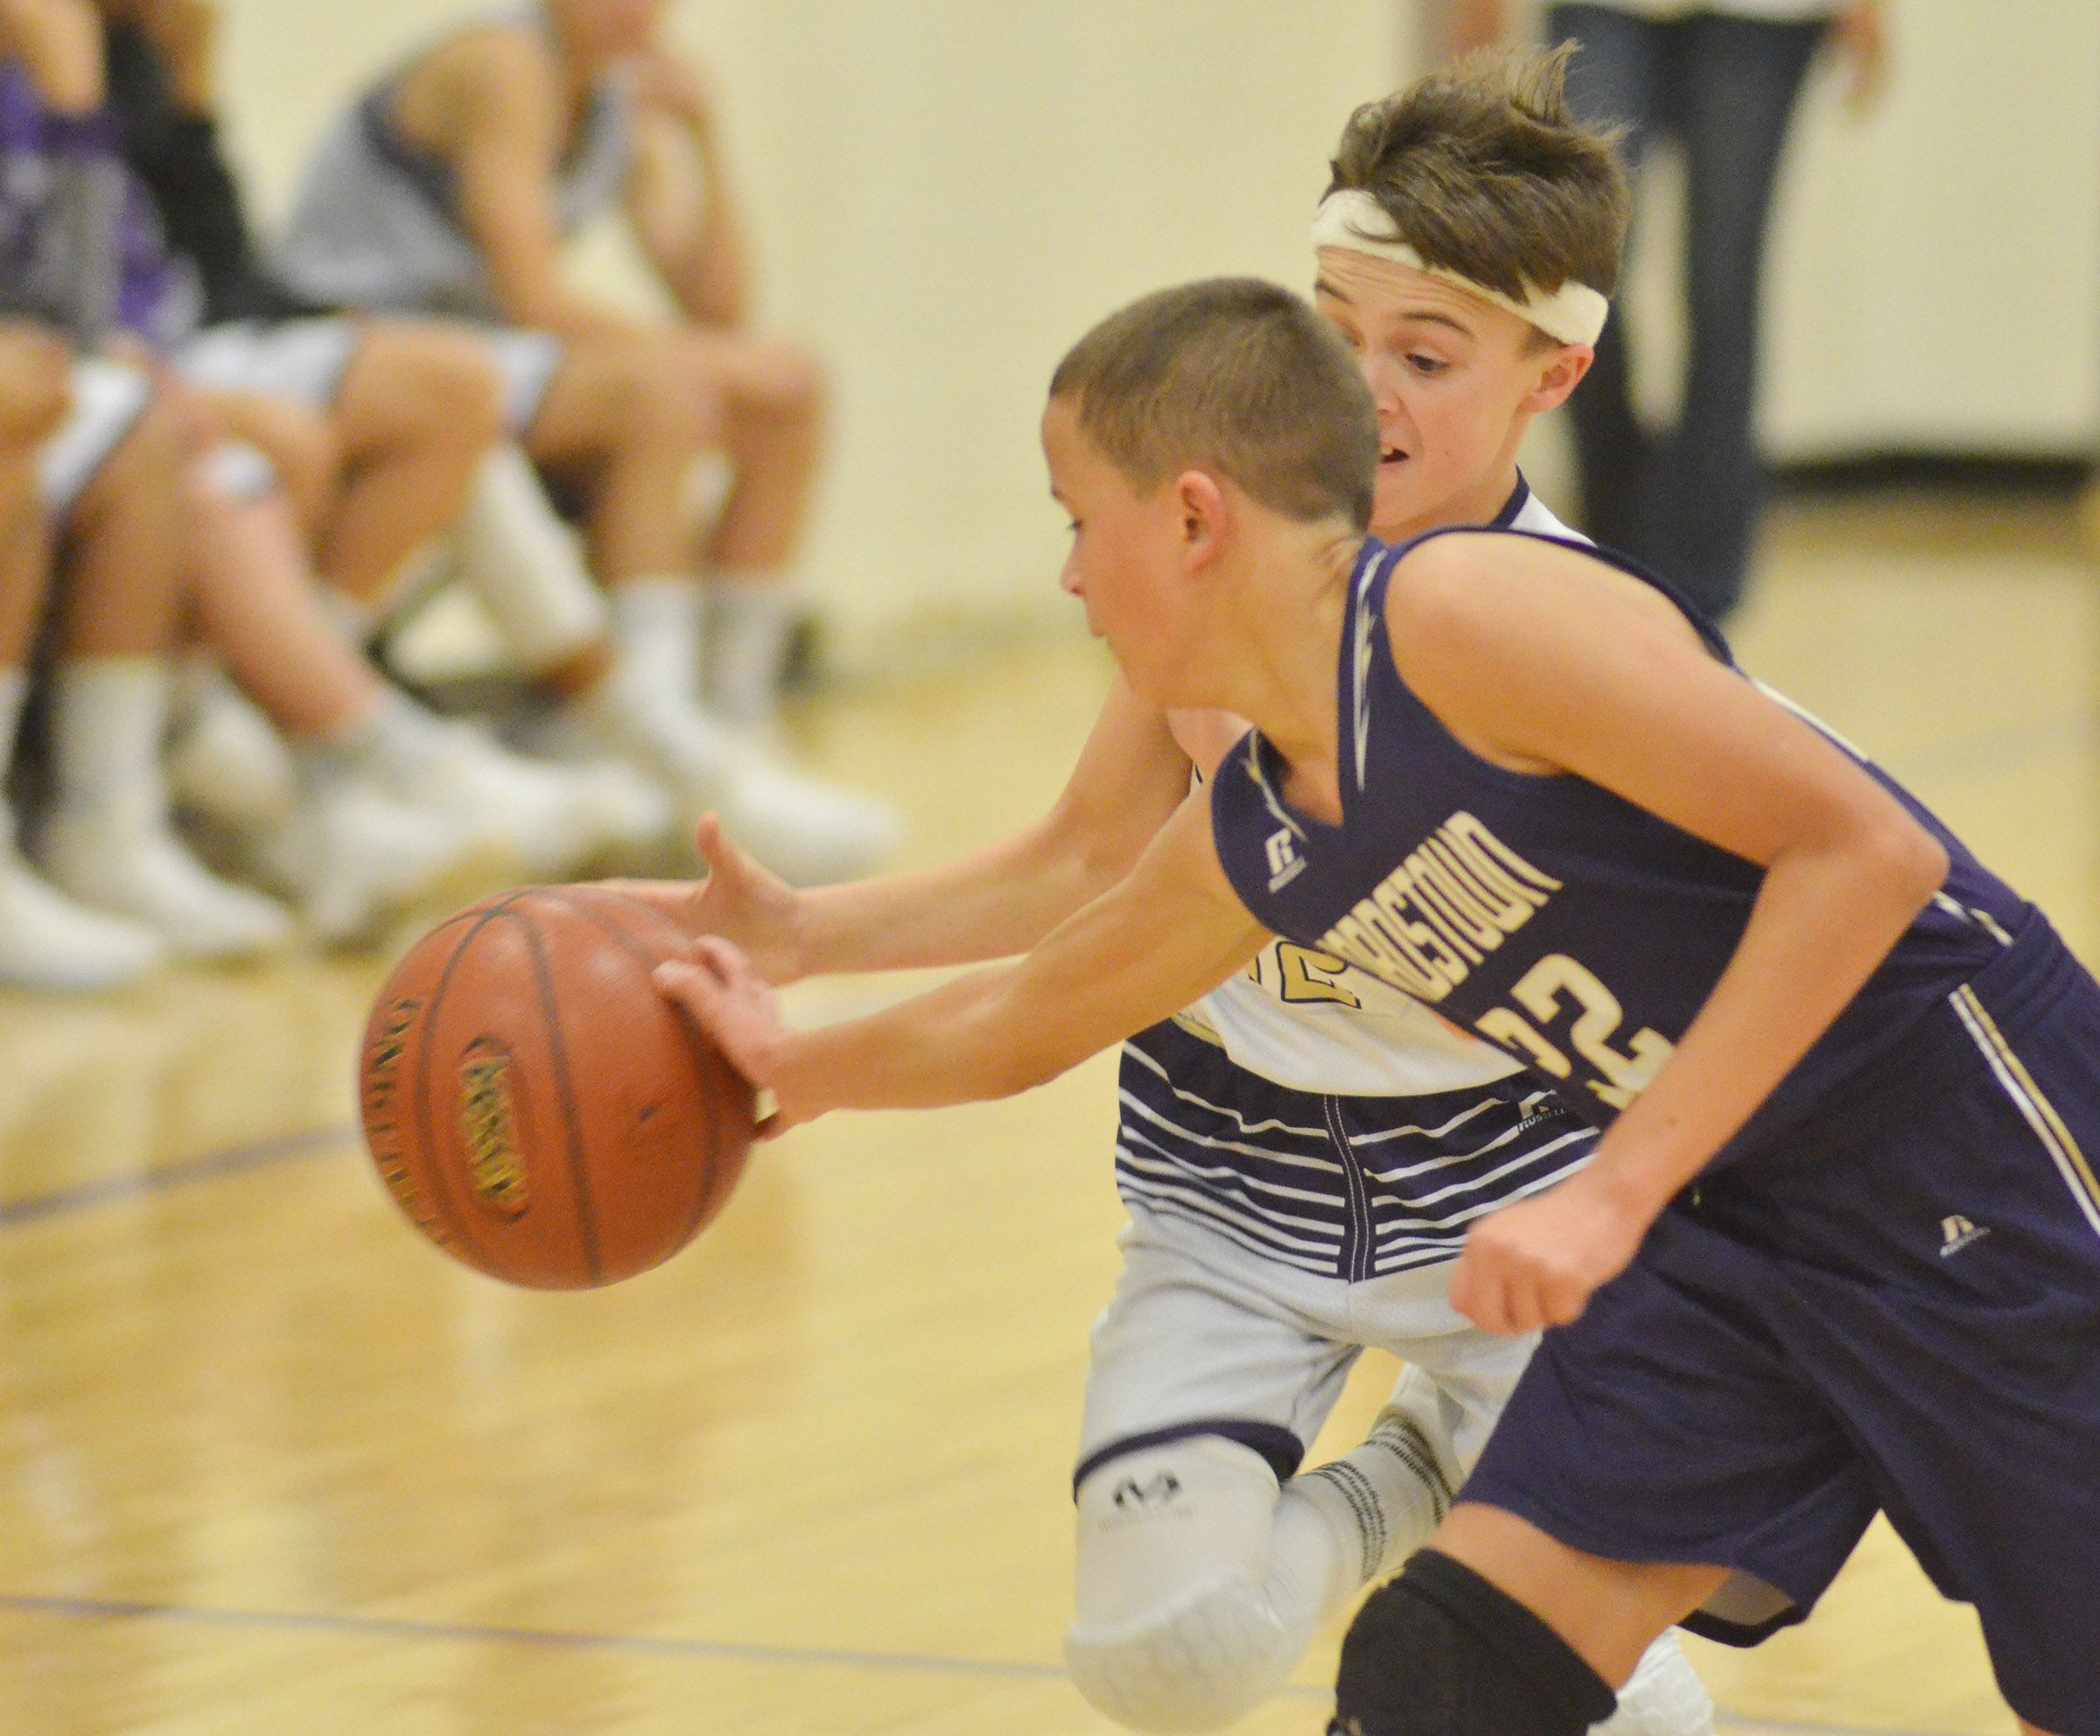 CMS seventh-grader Chase Hord fights for the ball.